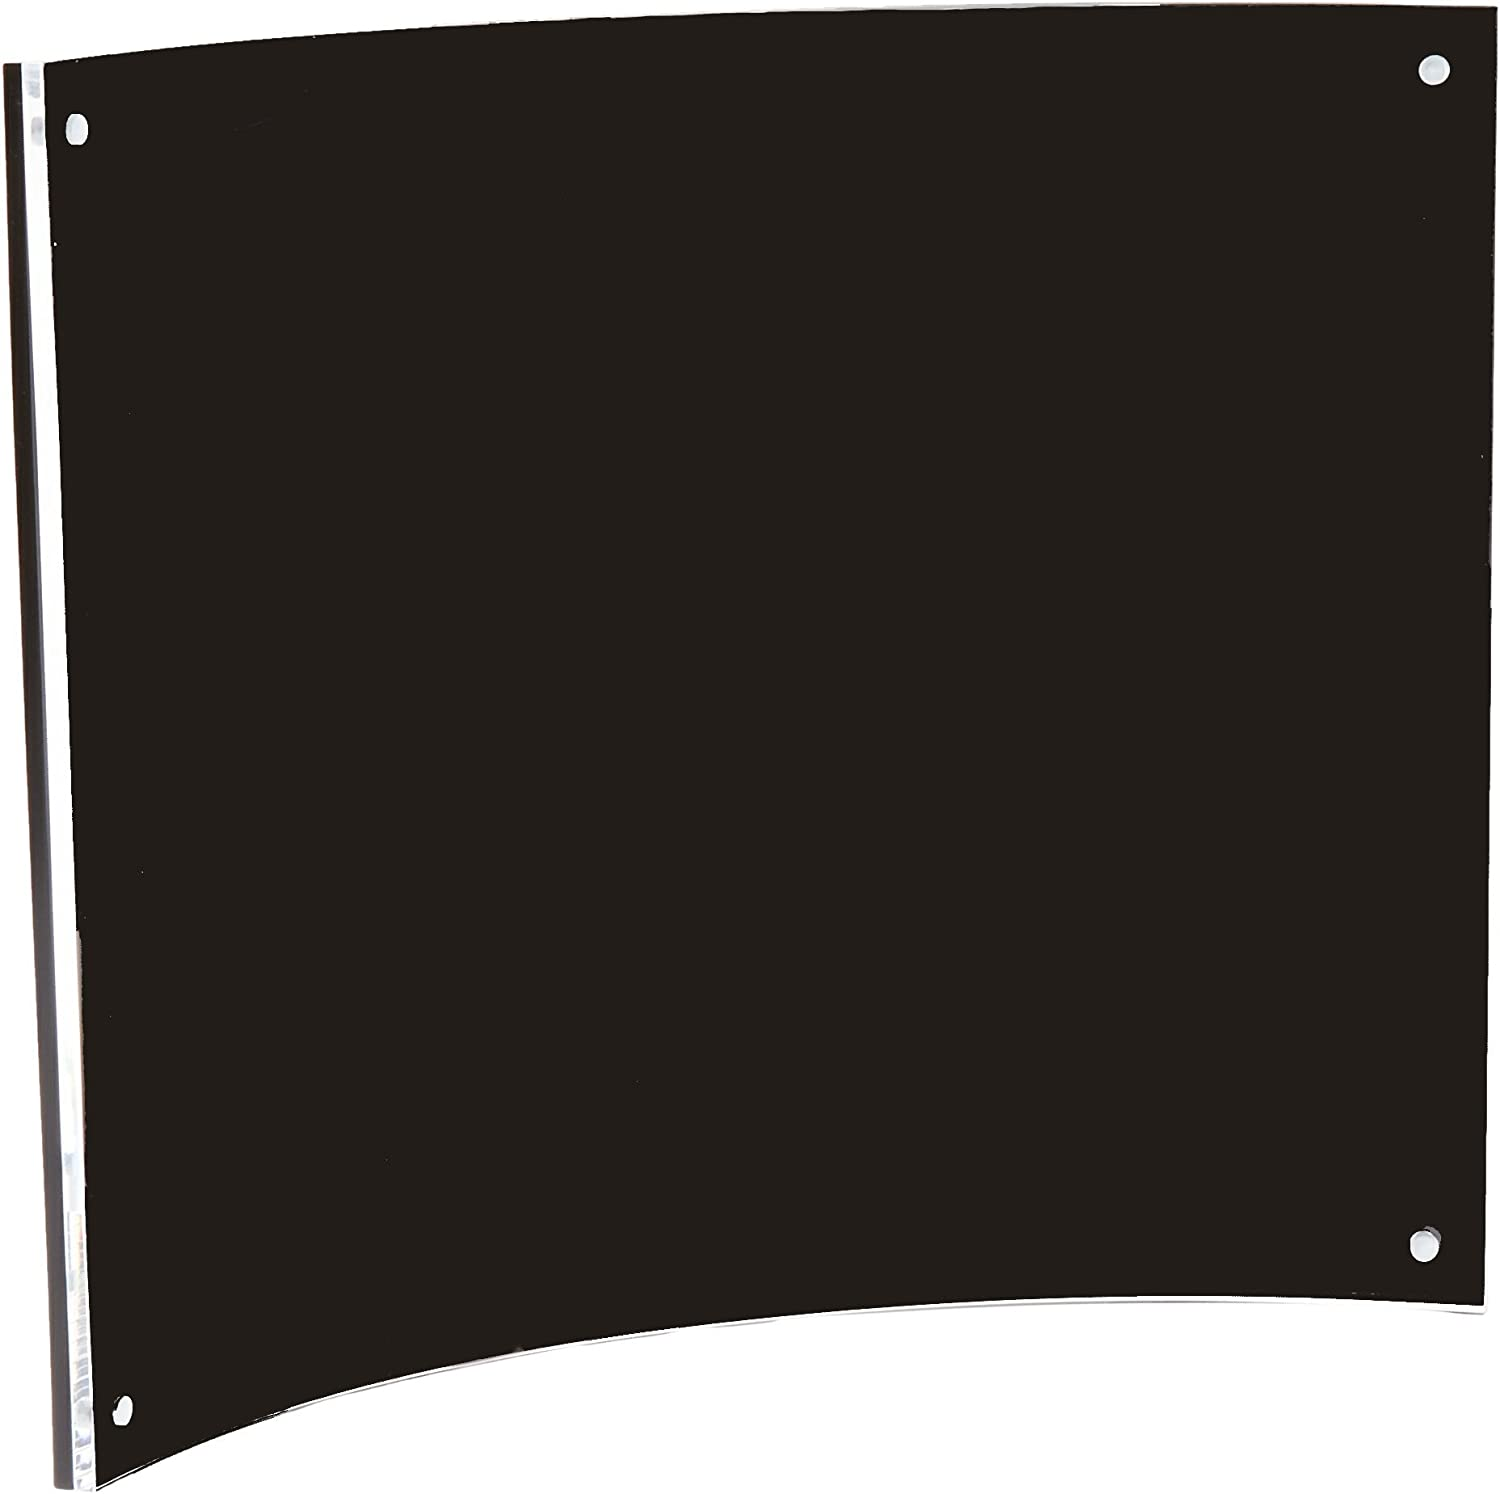 Superior Image Magnetic Certificate Holder, Plastic, 8-1 2 x 11, 11, 11, schwarz Clear B001E6C3AY | Sale Deutschland